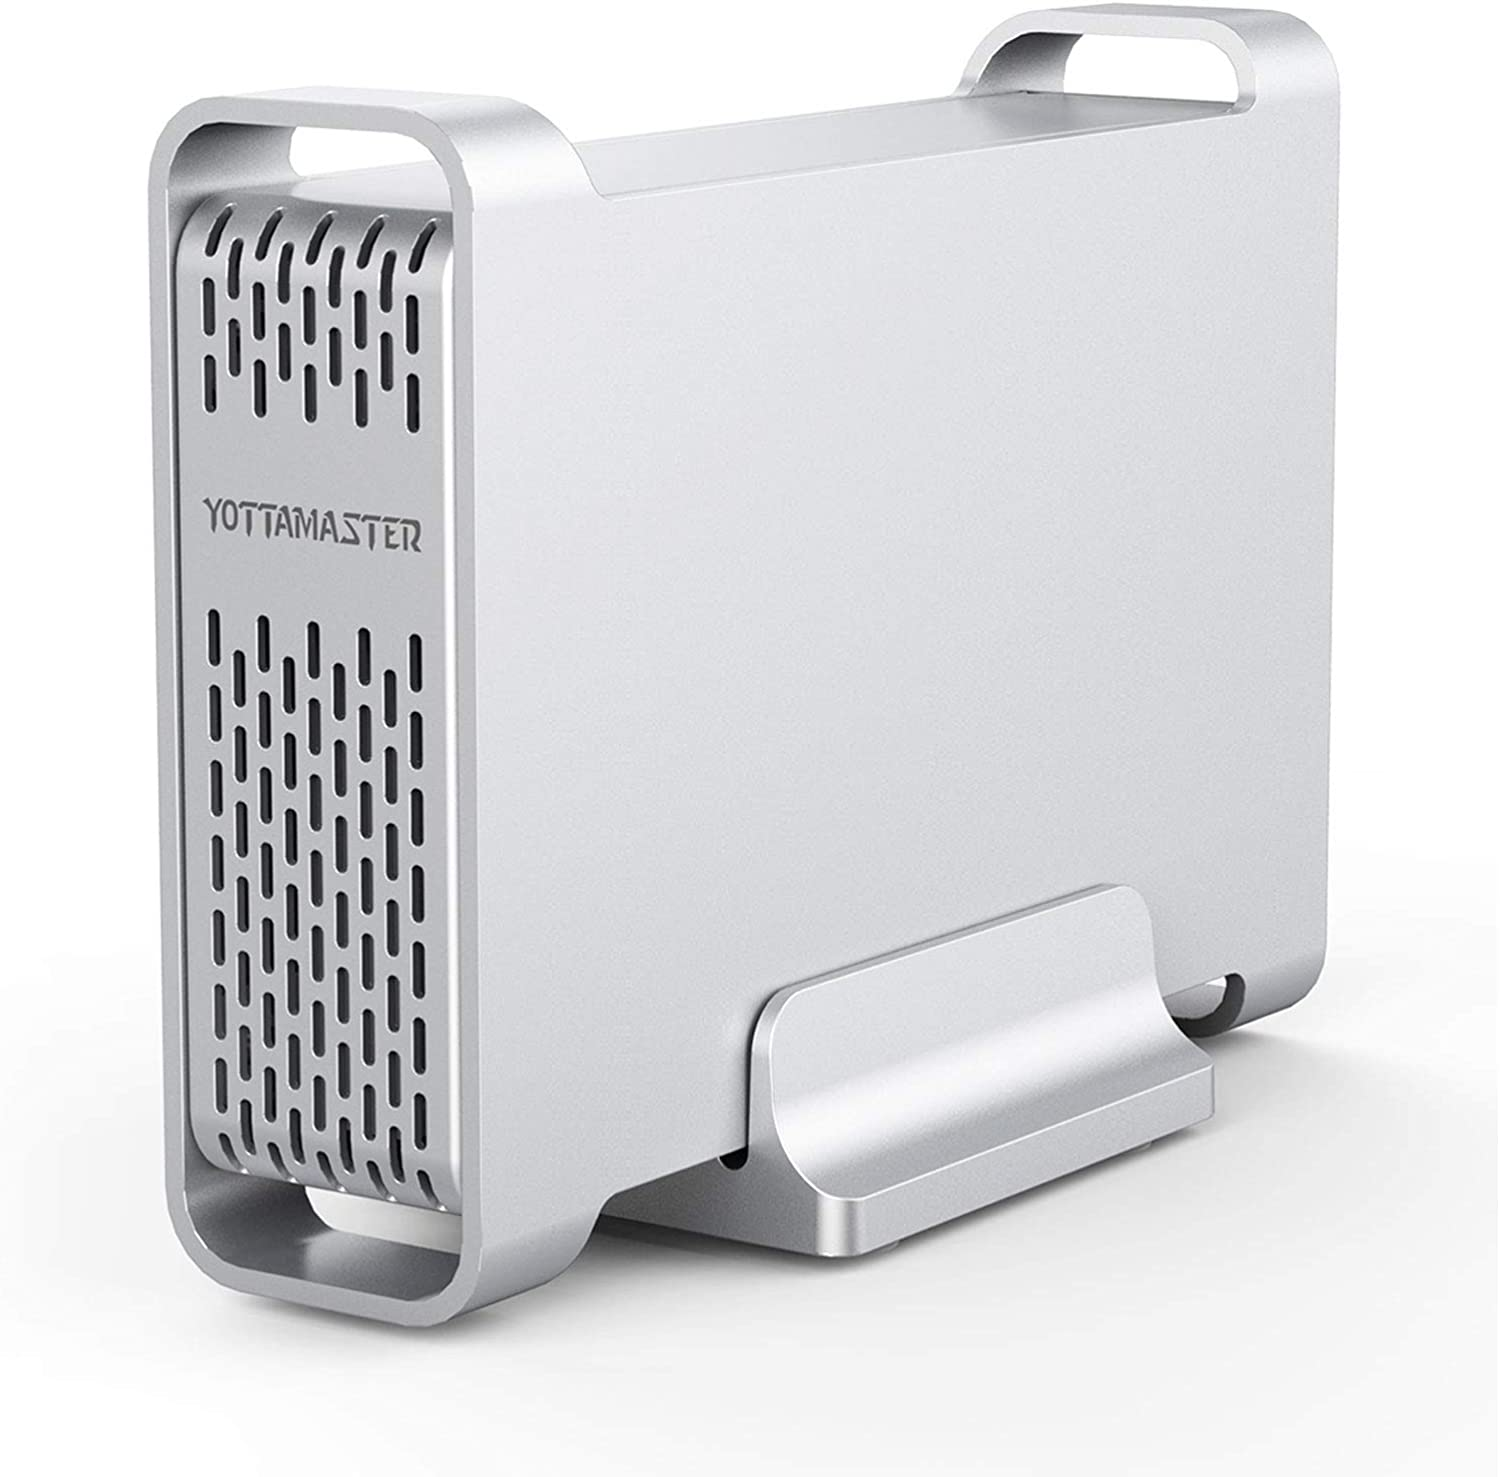 "Yottamaster Aluminum Alloy 2.5 inch USB3.0 External Hard Drive Enclosure for 12.5mm 9.5mm 7mm 2.5"" HDD SSD Support UASP"